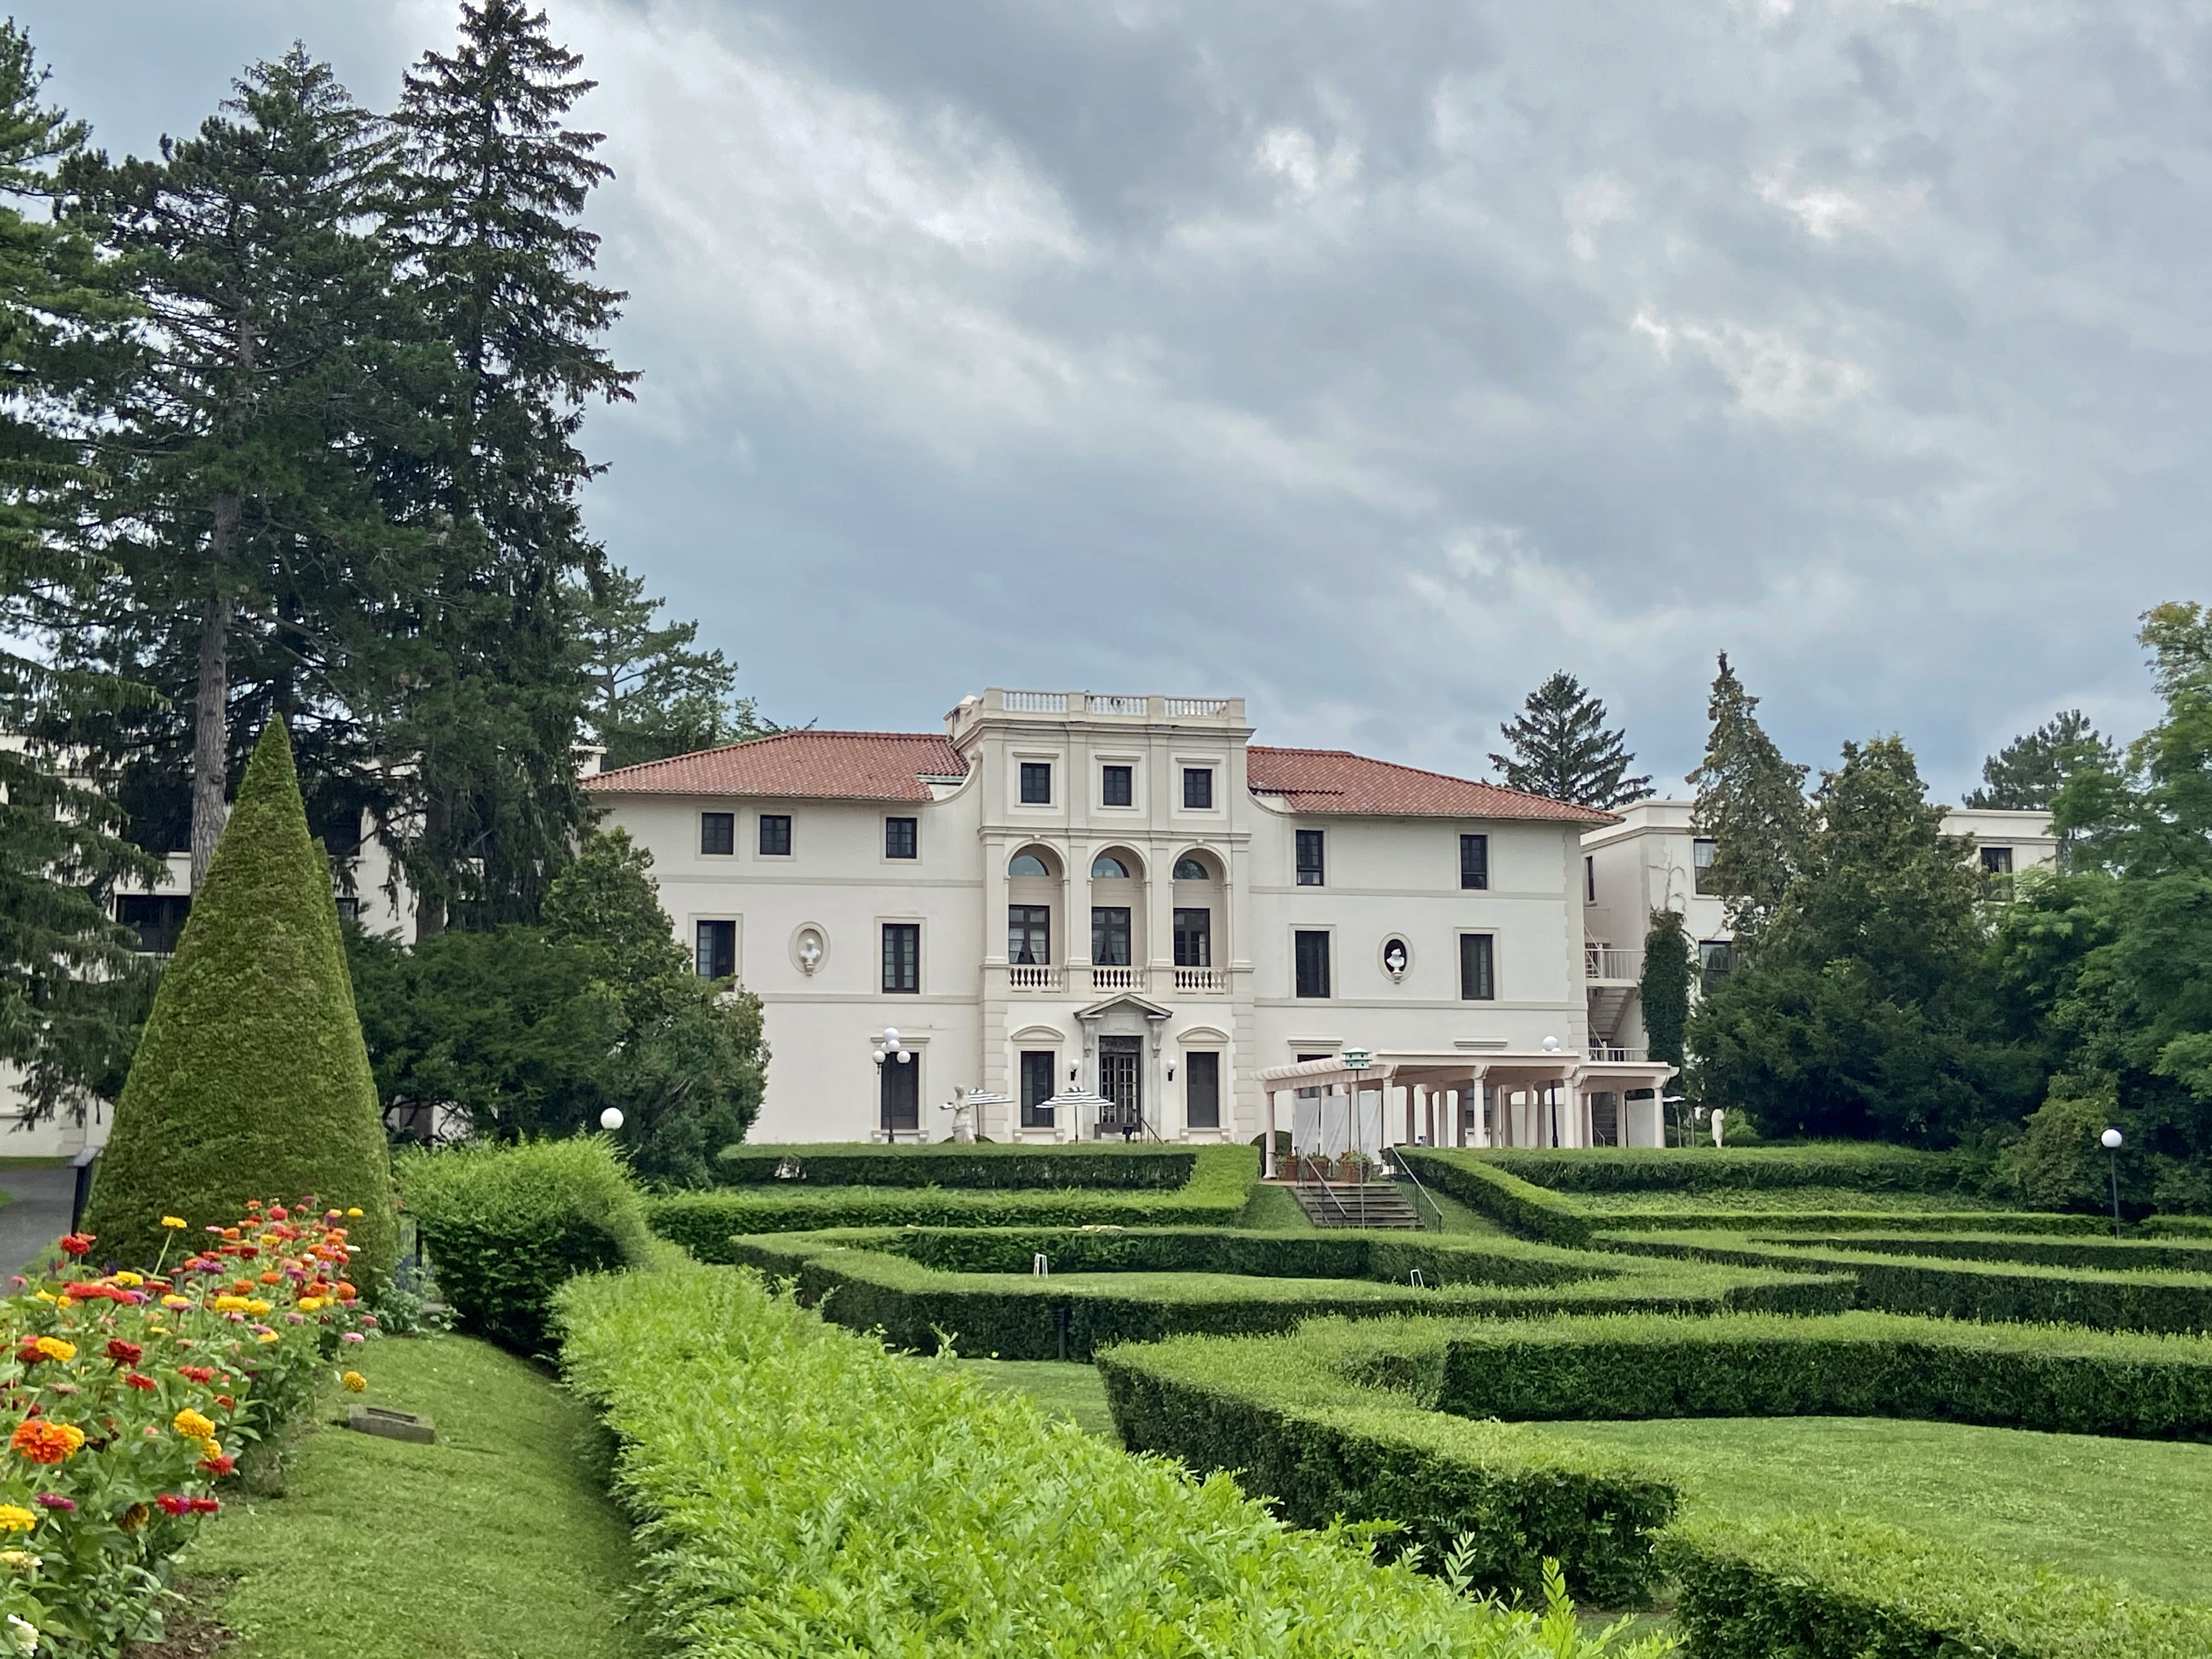 Looking for someplace interesting to stay? Consider Geneva on the Lake, a monastery-turned-inn, in Geneva, N.Y.